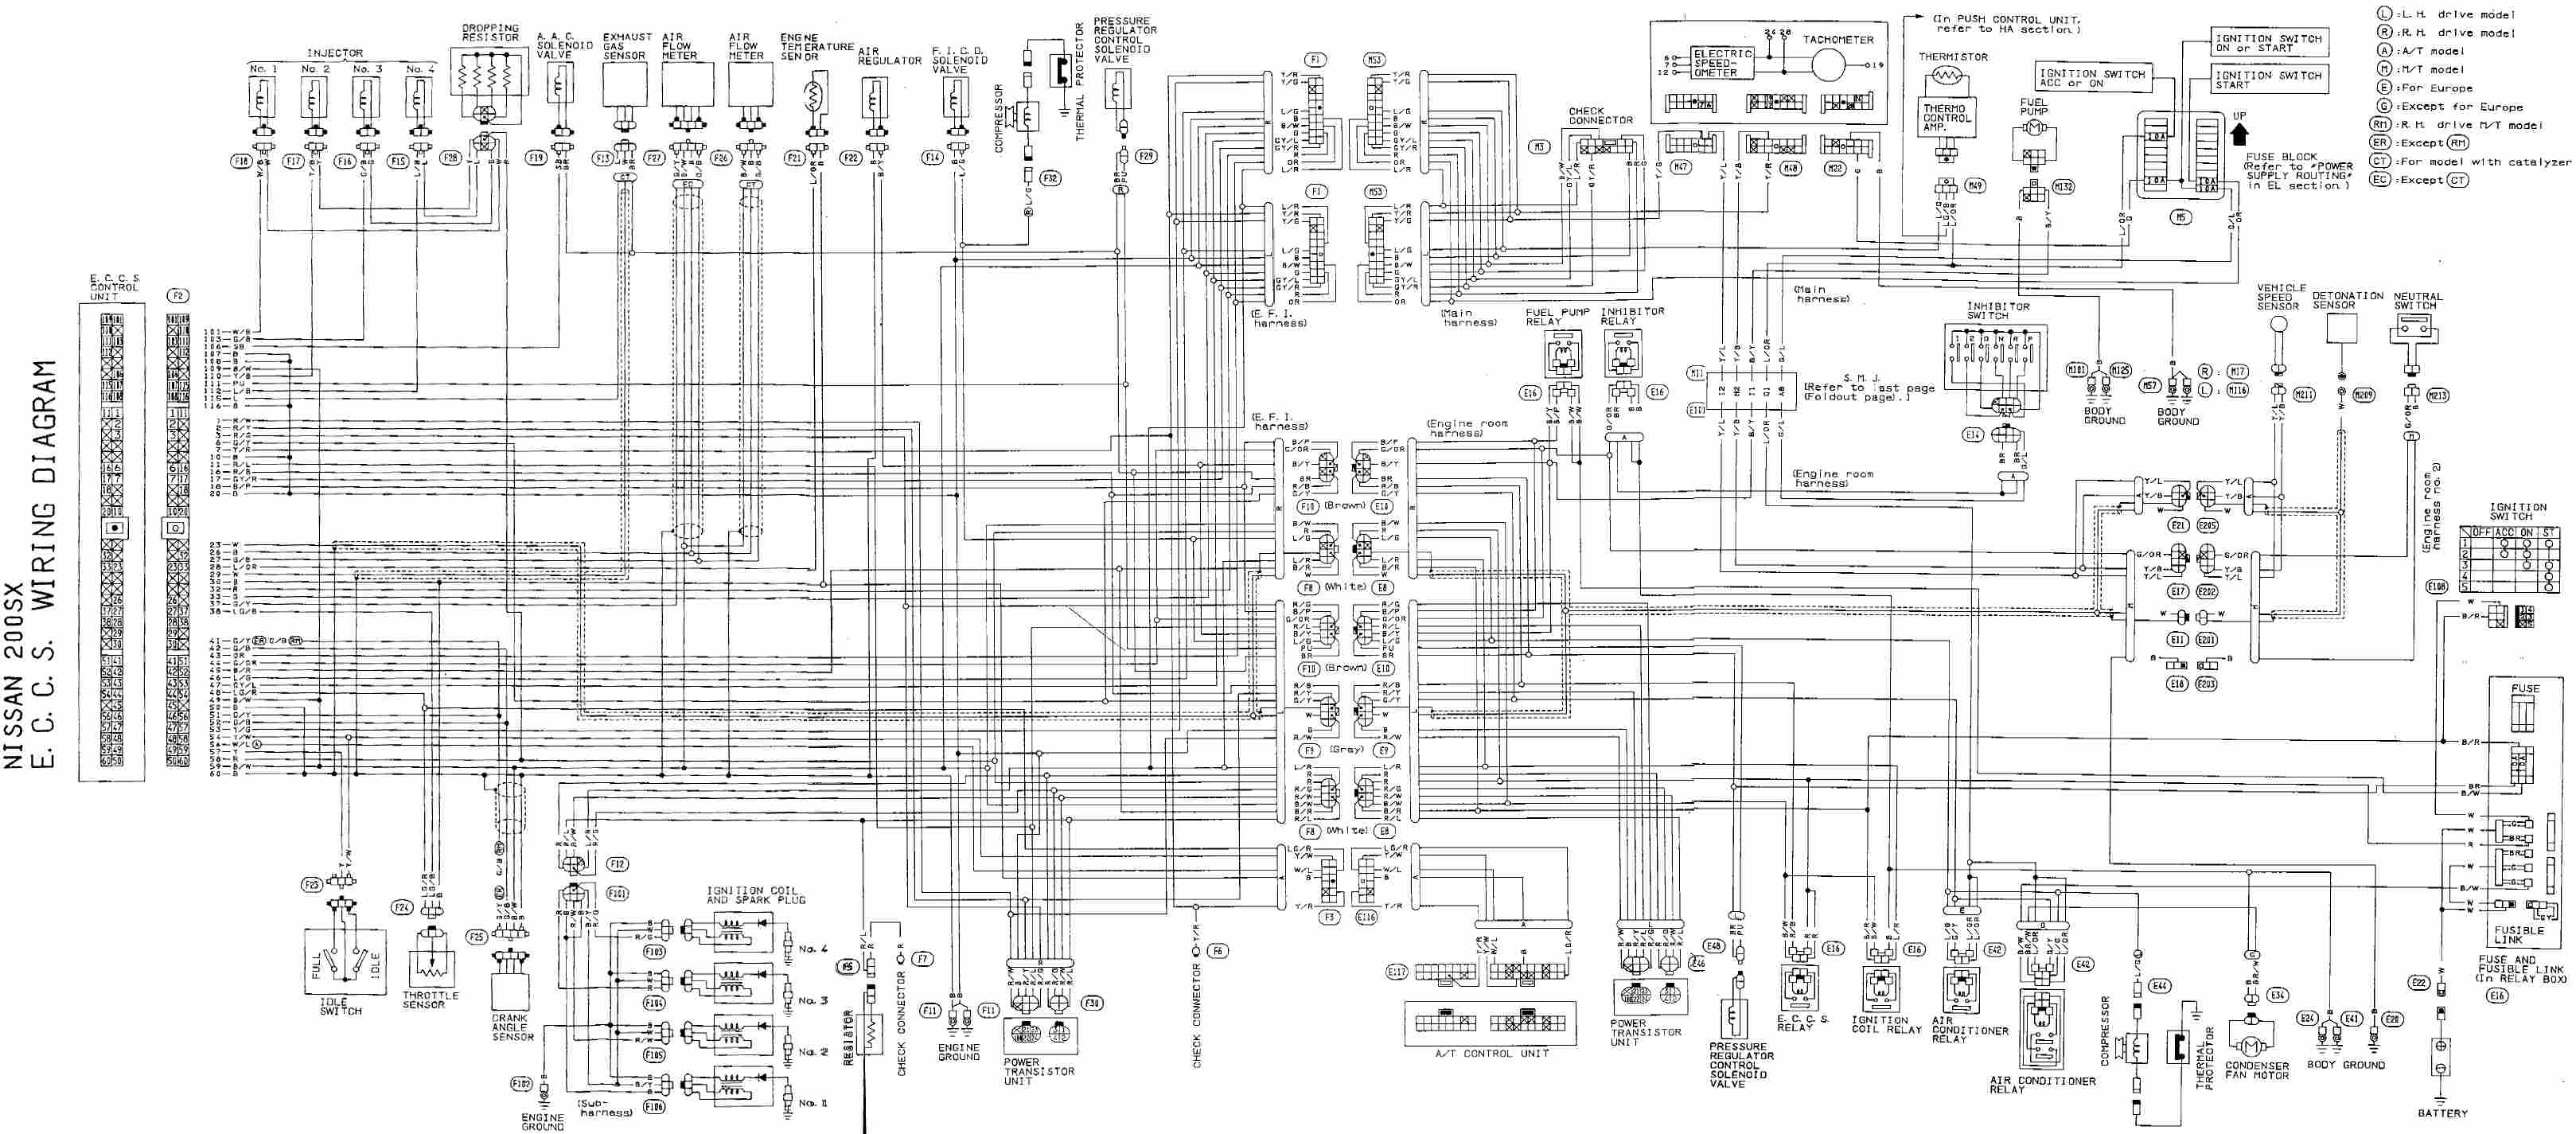 Nissan on 5 pin relay wiring diagram fuel pump